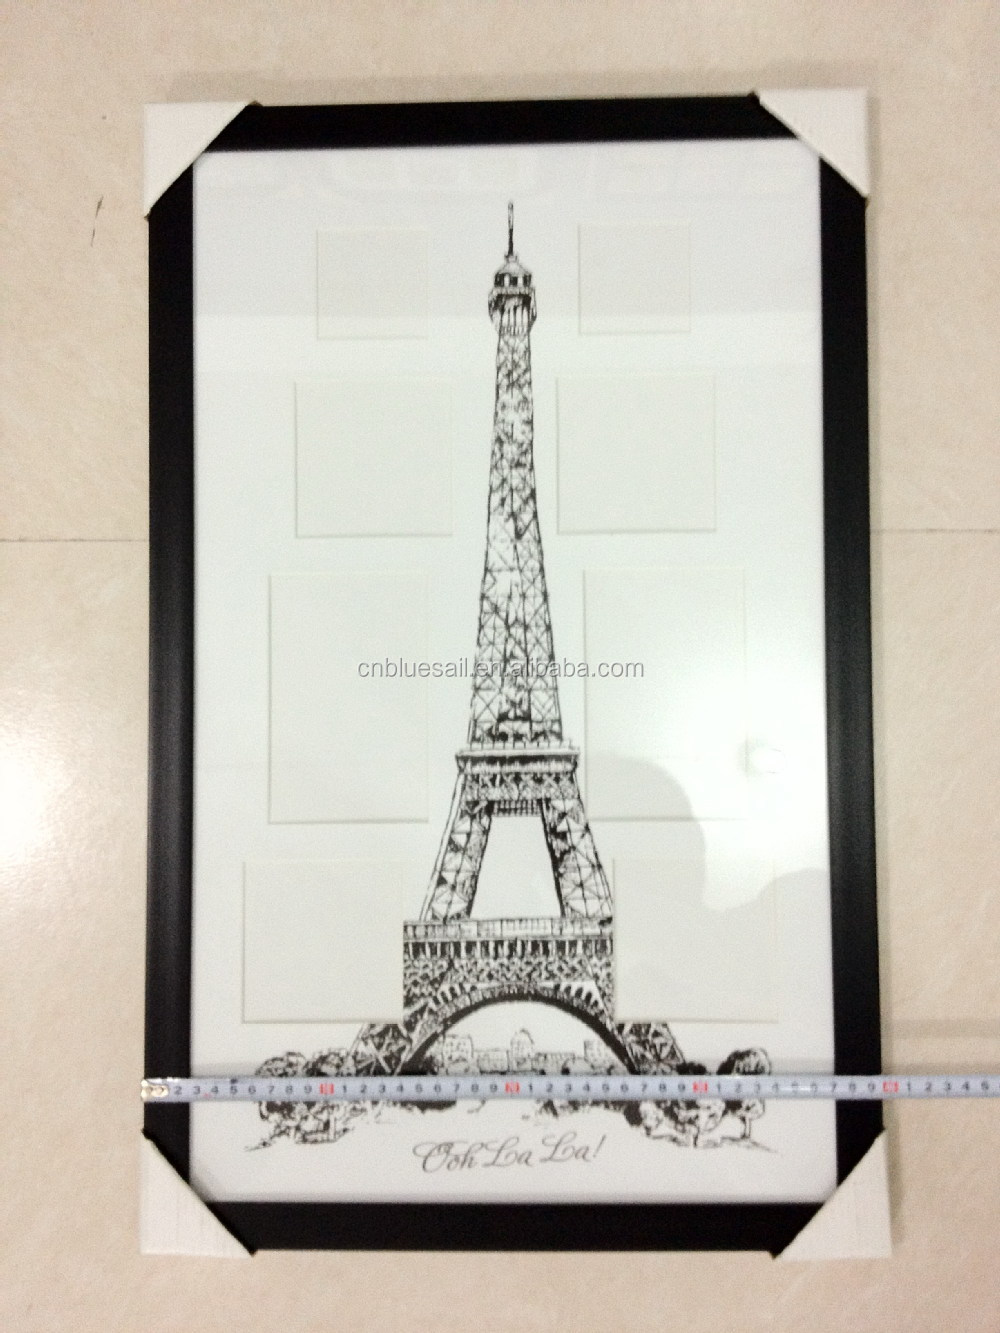 Black ps frame for picturedry mount picture framesscenic frame black ps frame for picture dry mount picture frames scenic frame by eiffel tower jeuxipadfo Images